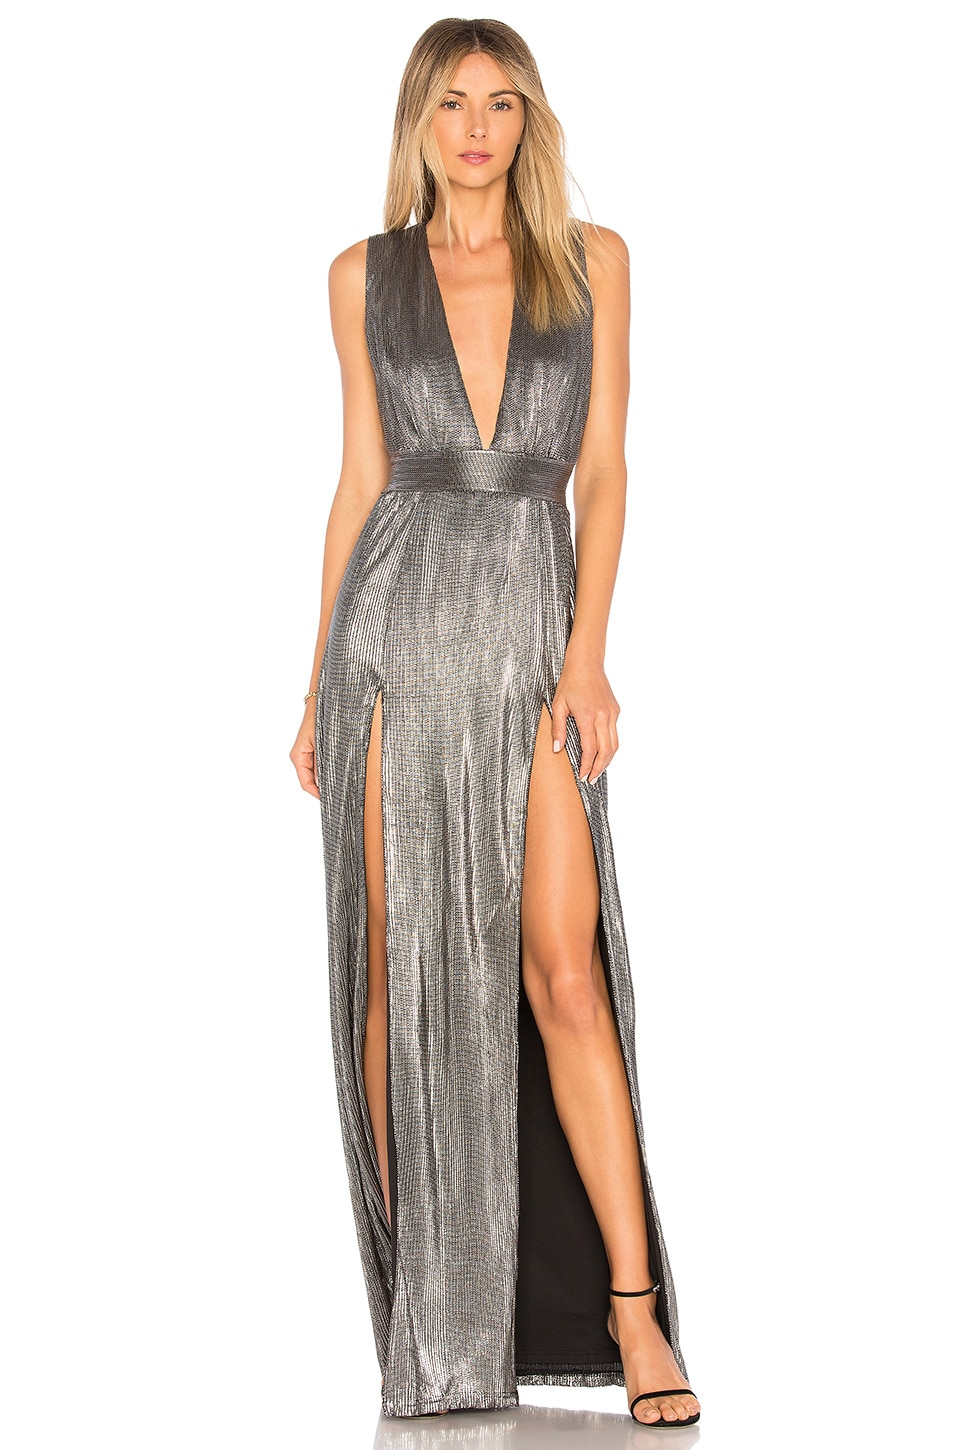 Lovers + Friends Naomi Dress in Silver